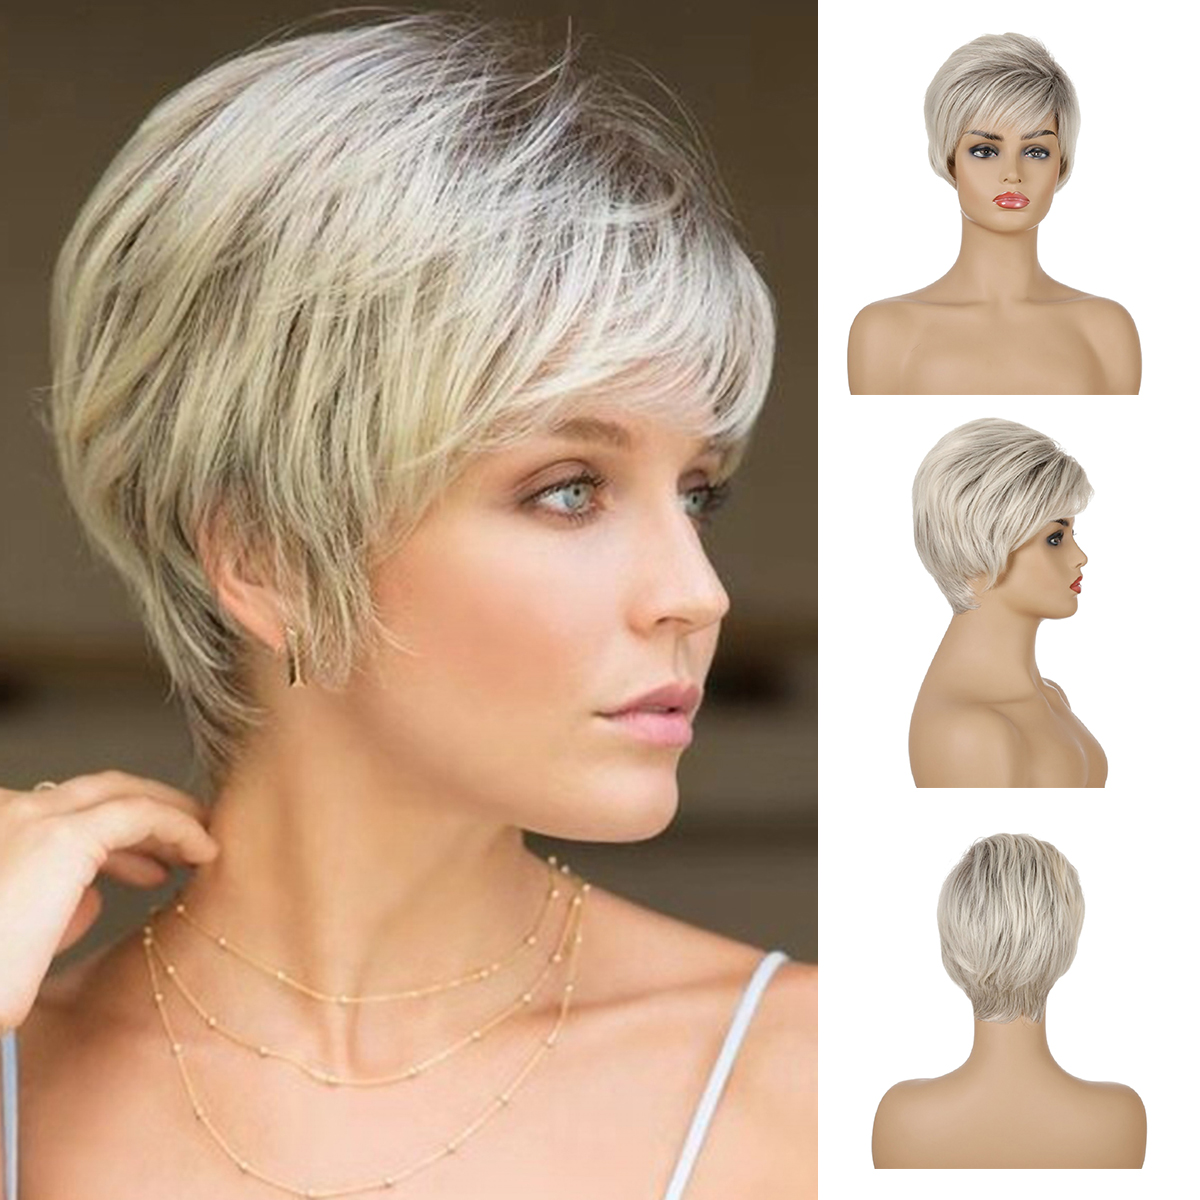 Details about Short Straight Cropped Wig